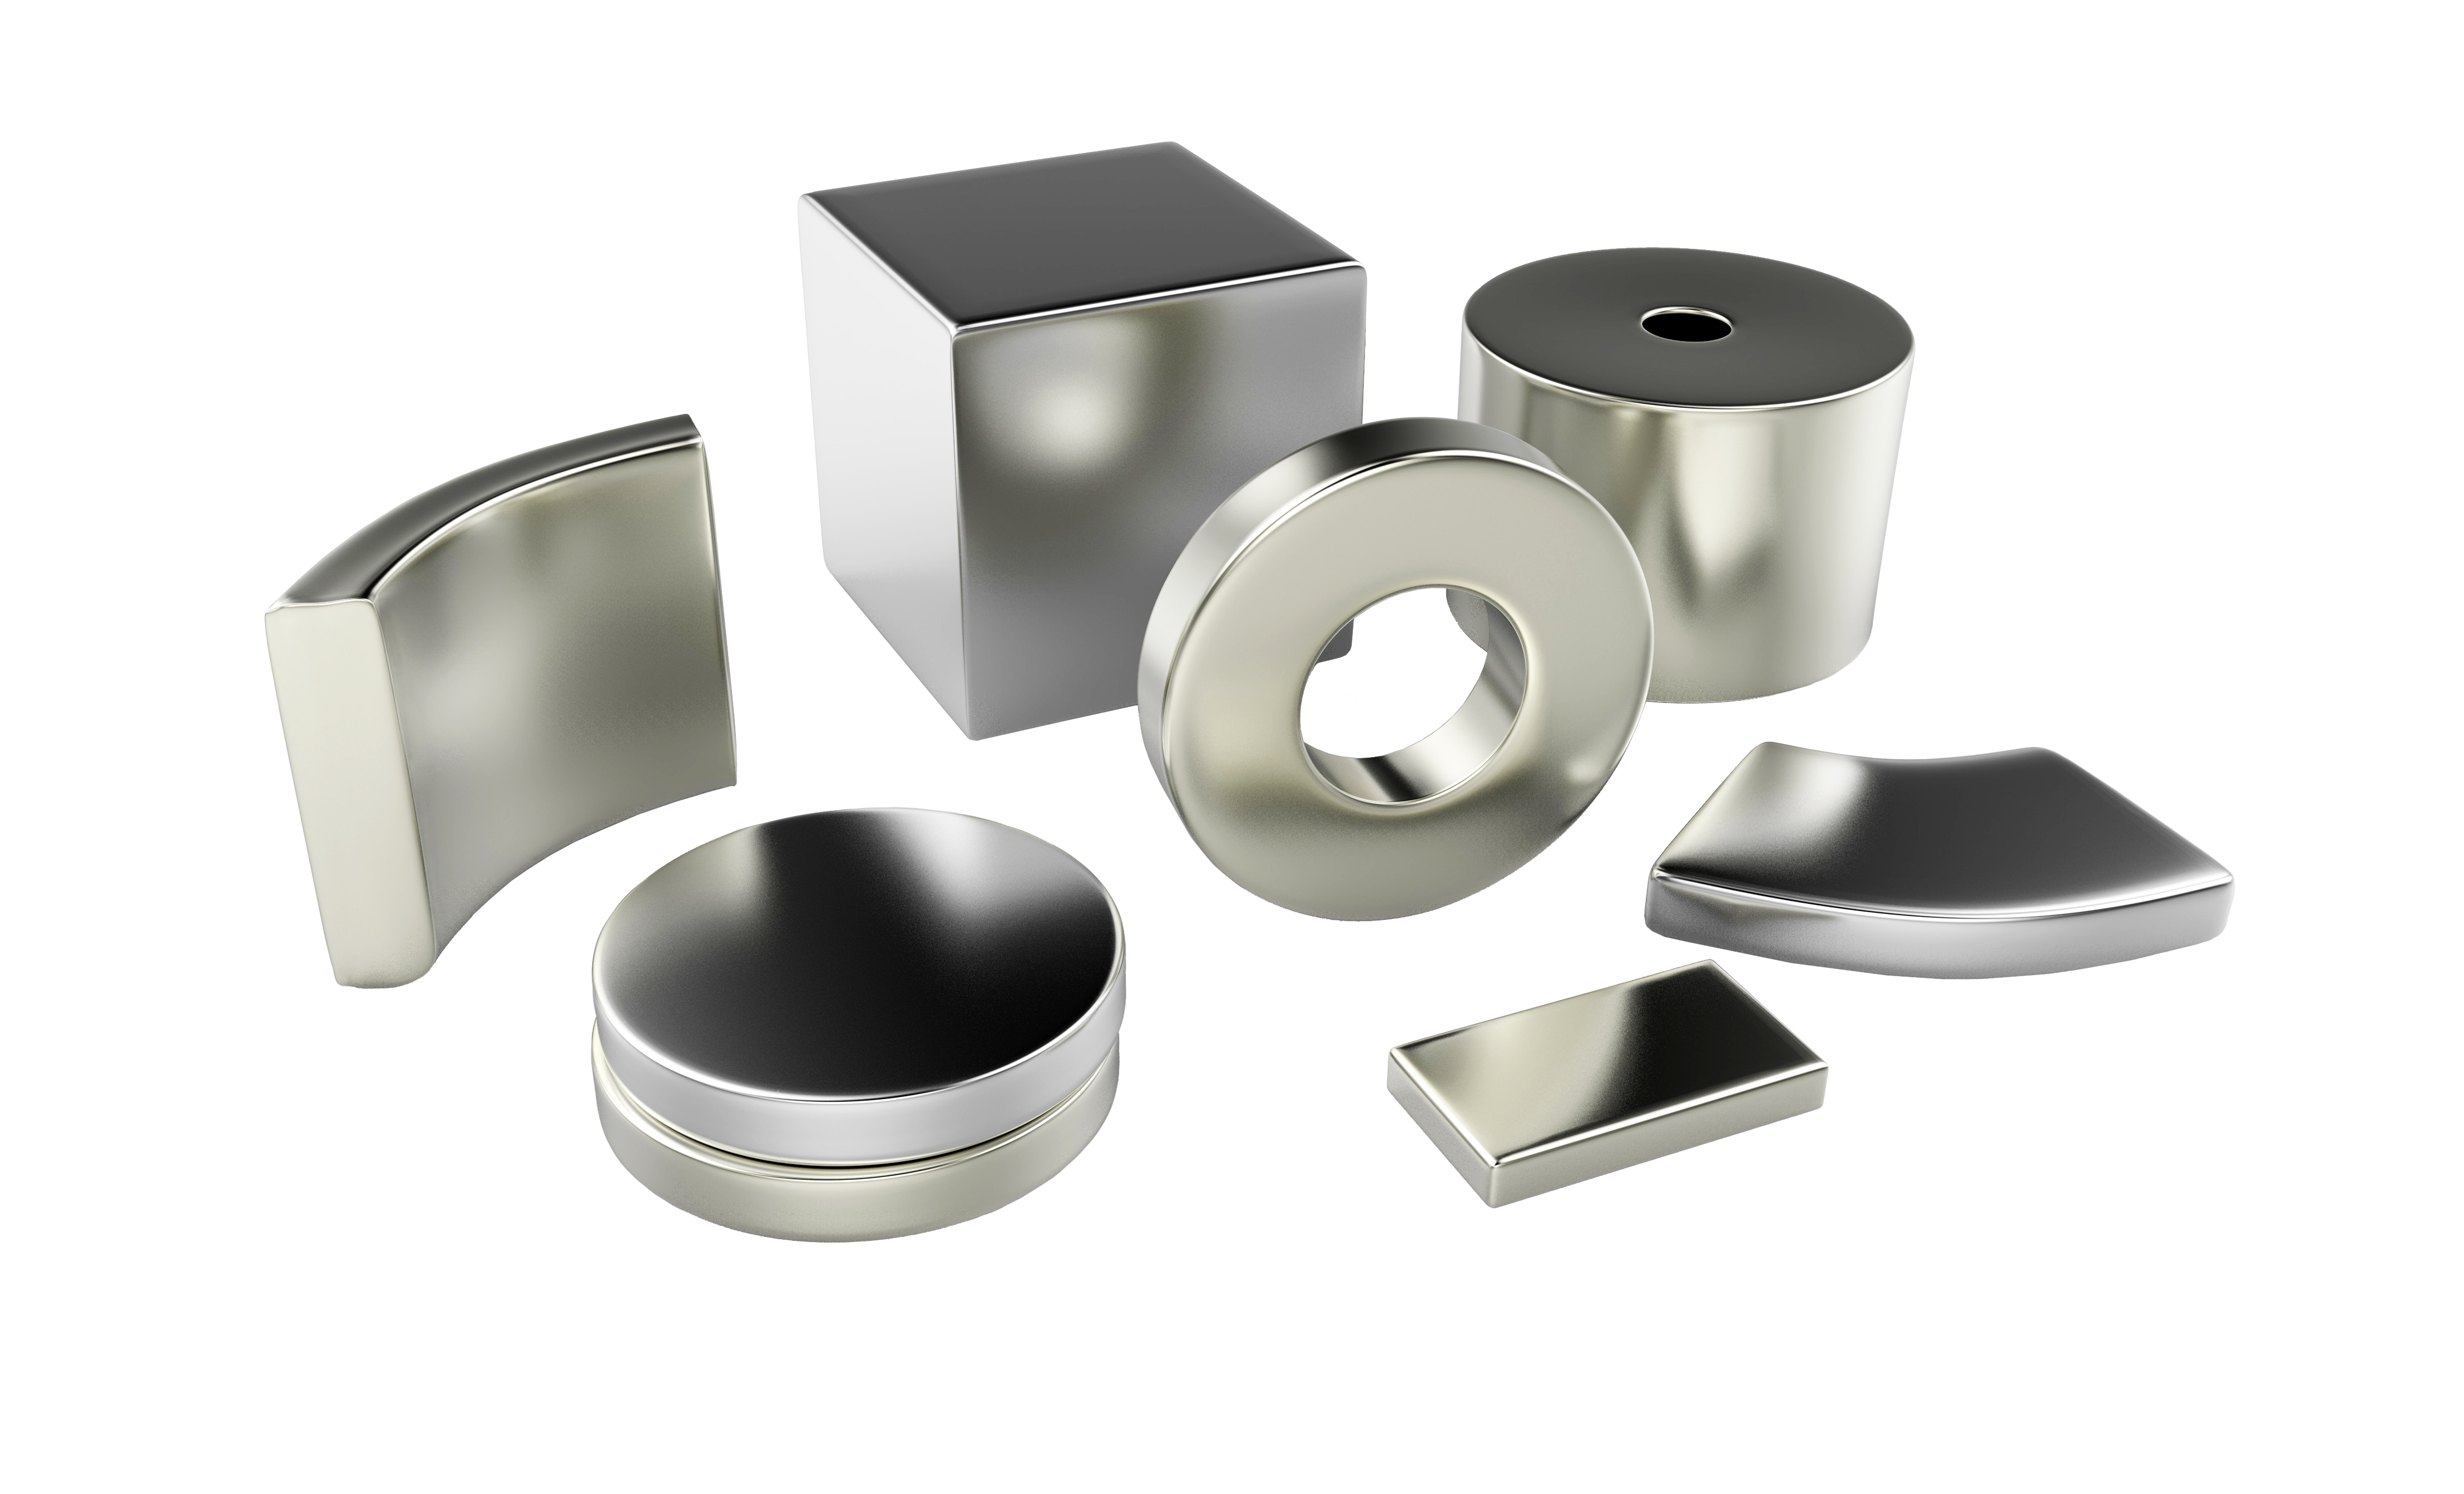 Types Of Magnets >> The Different Forms Of Magnets And Their Use Imagnetshop